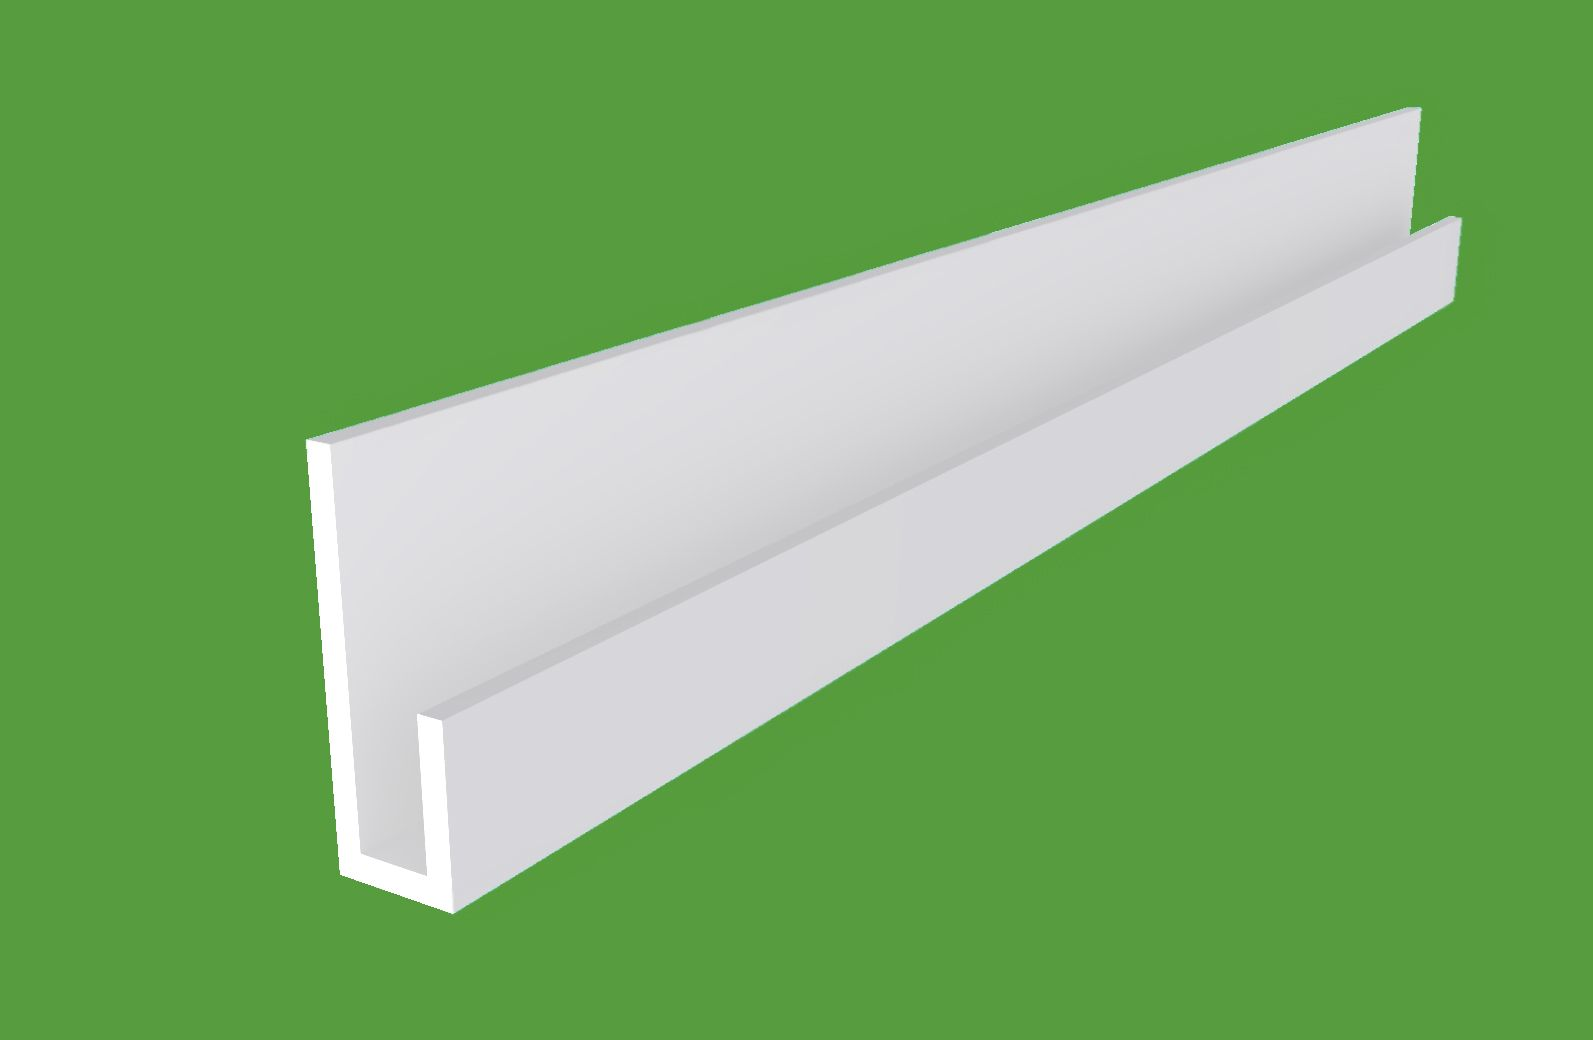 Plastic Channel J Extrusion Pvc Trim For Edge Protection And